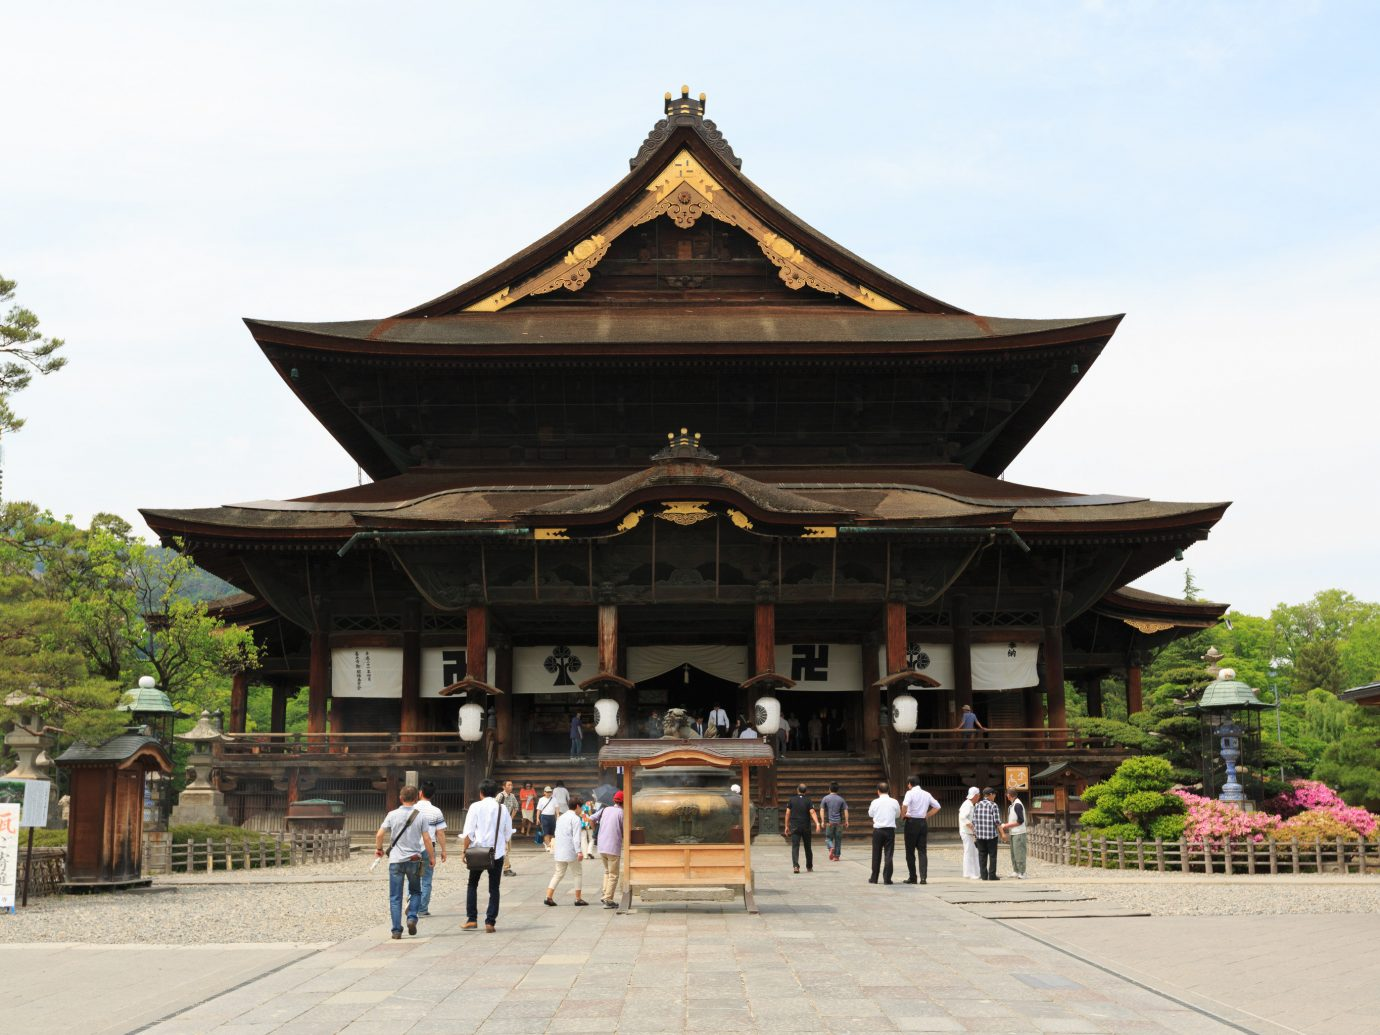 Adventure outdoor sky chinese architecture japanese architecture shinto shrine historic site shrine people temple place of worship building pagoda leisure tree pavilion square